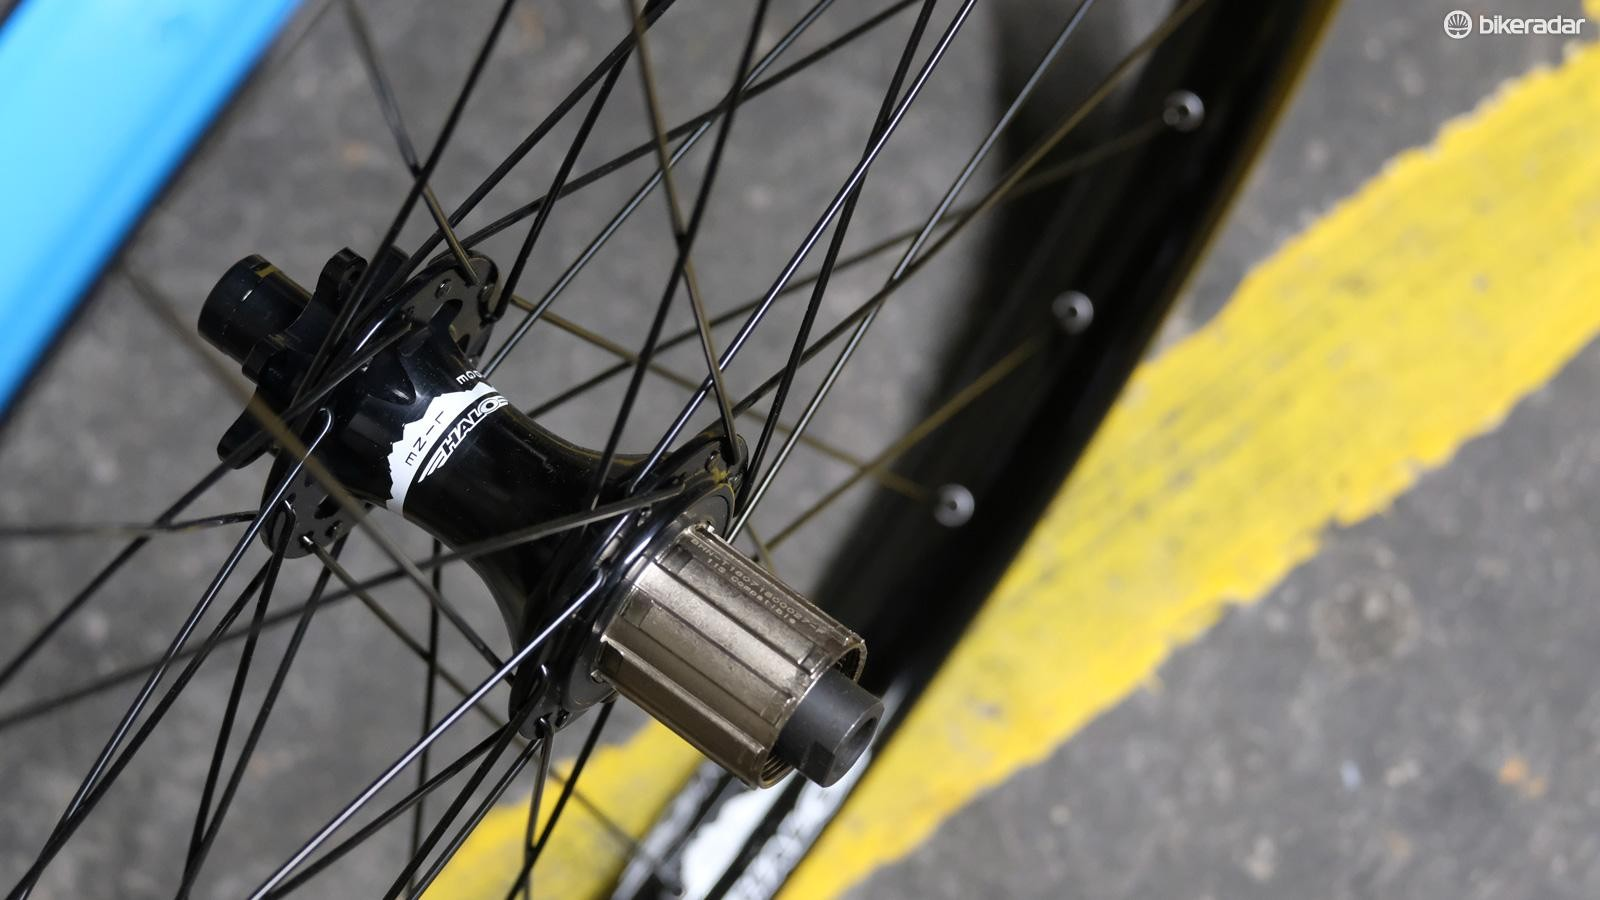 The hubs feature a cro-mo axle and freehub body